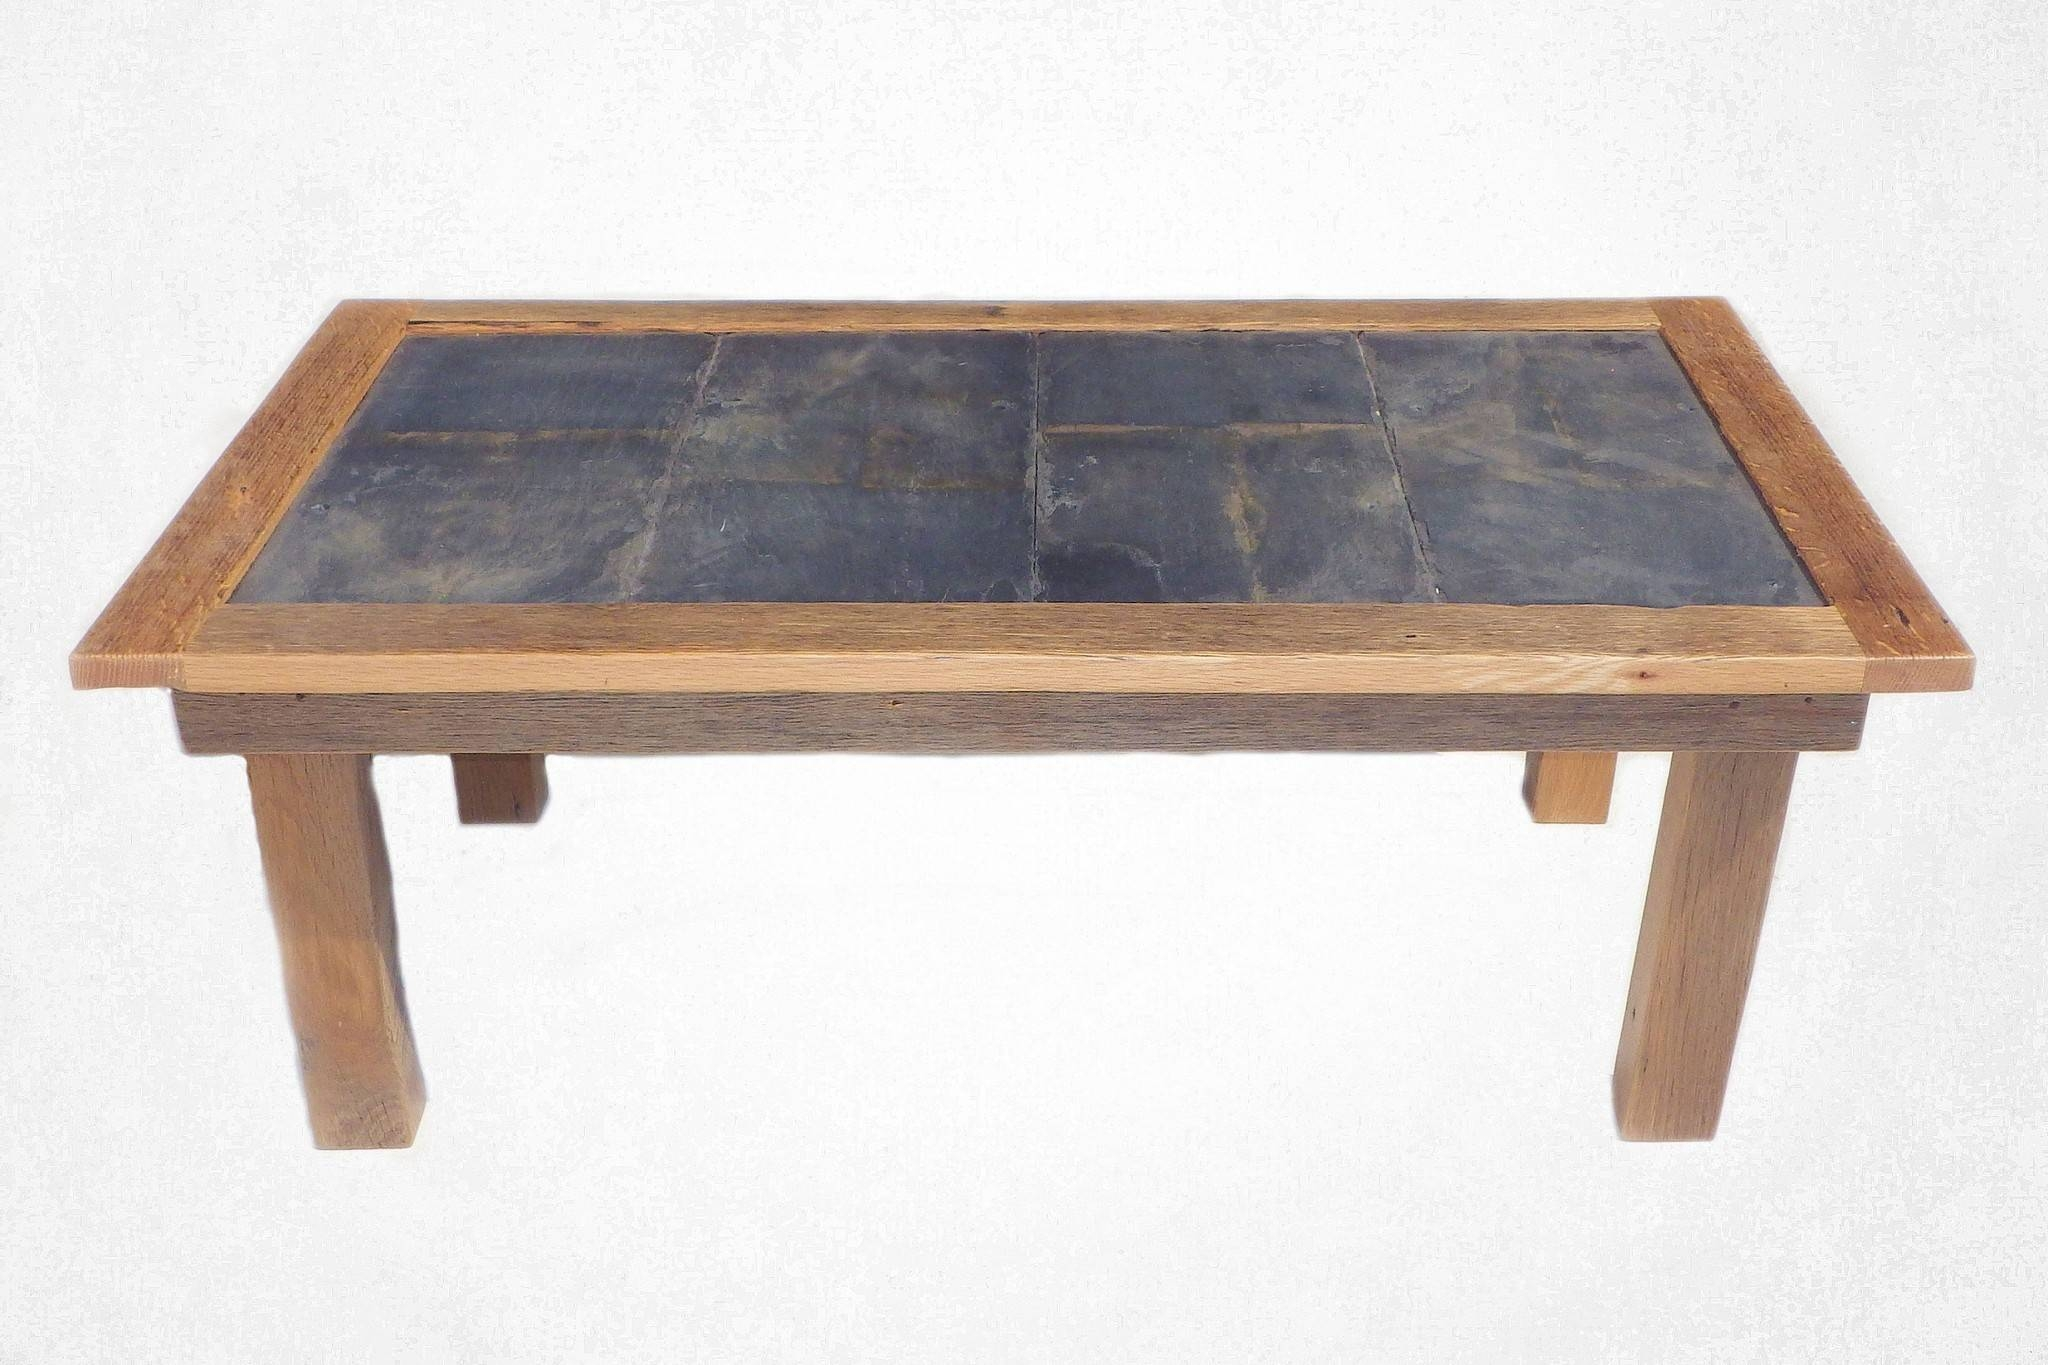 Furniture. Glamorous Round Oak Coffee Table Designs: Wonderful pertaining to Round Oak Coffee Tables (Image 10 of 30)